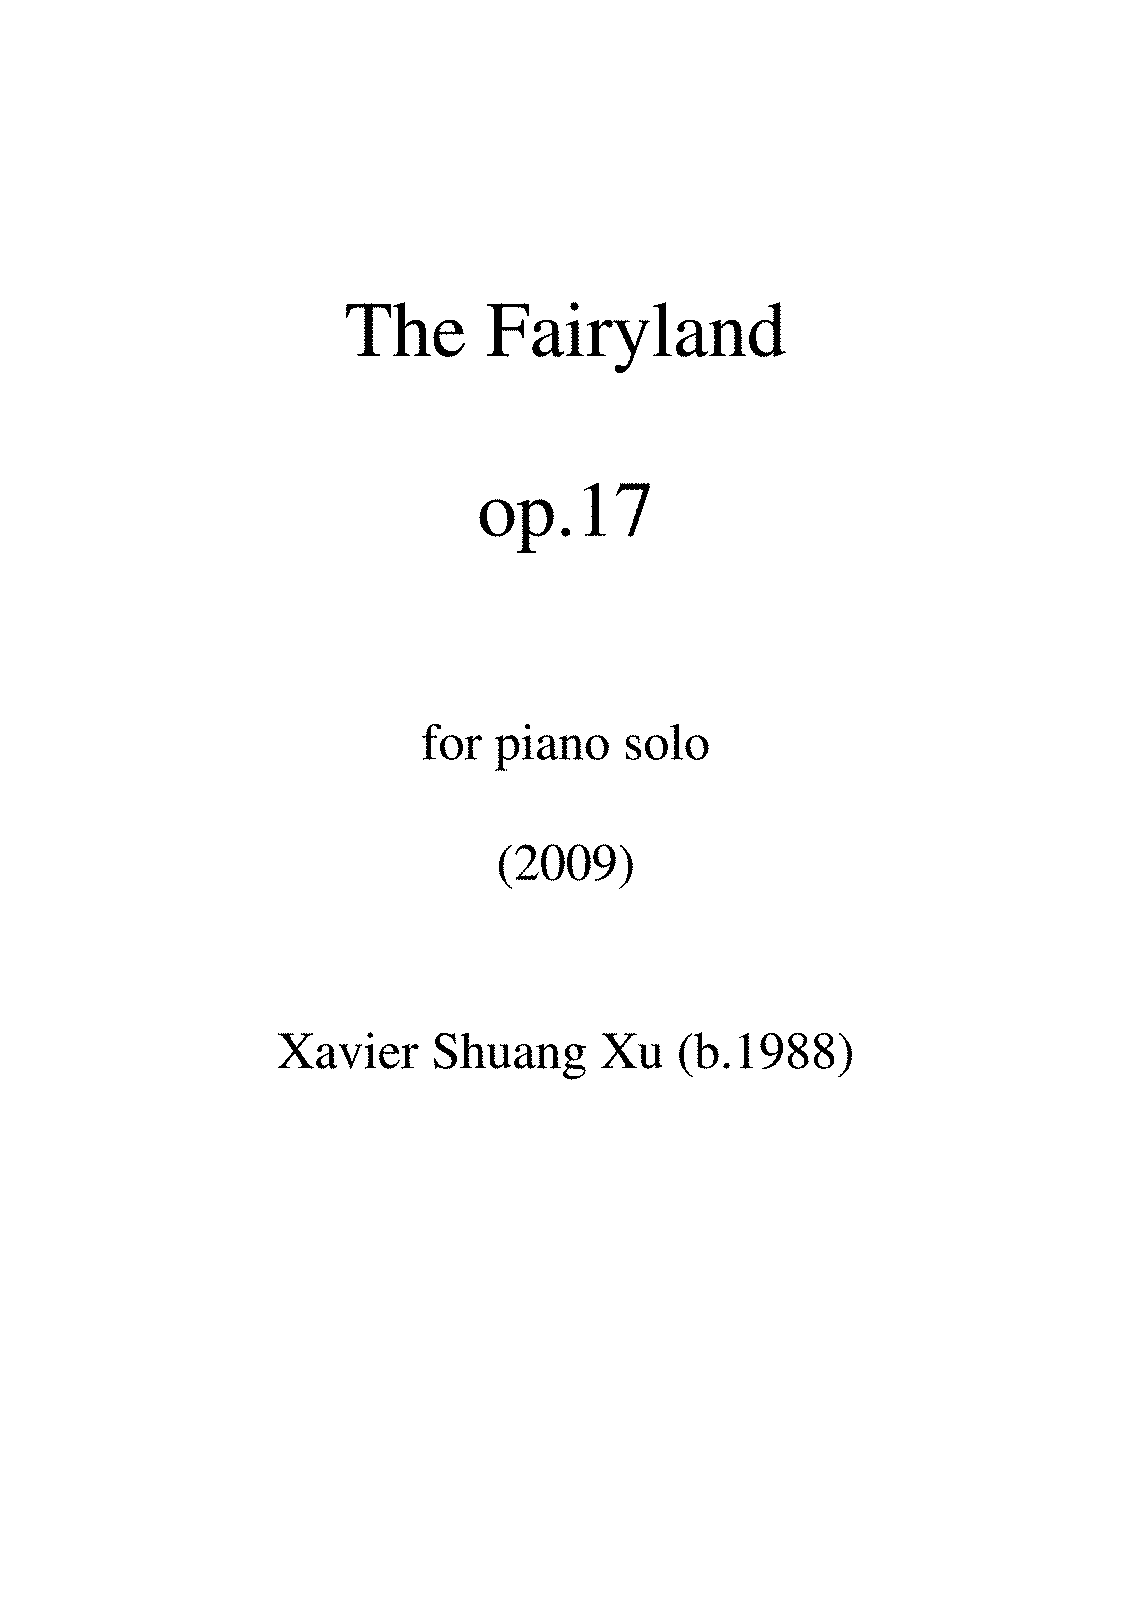 PMLP103906-The Fairyland.pdf